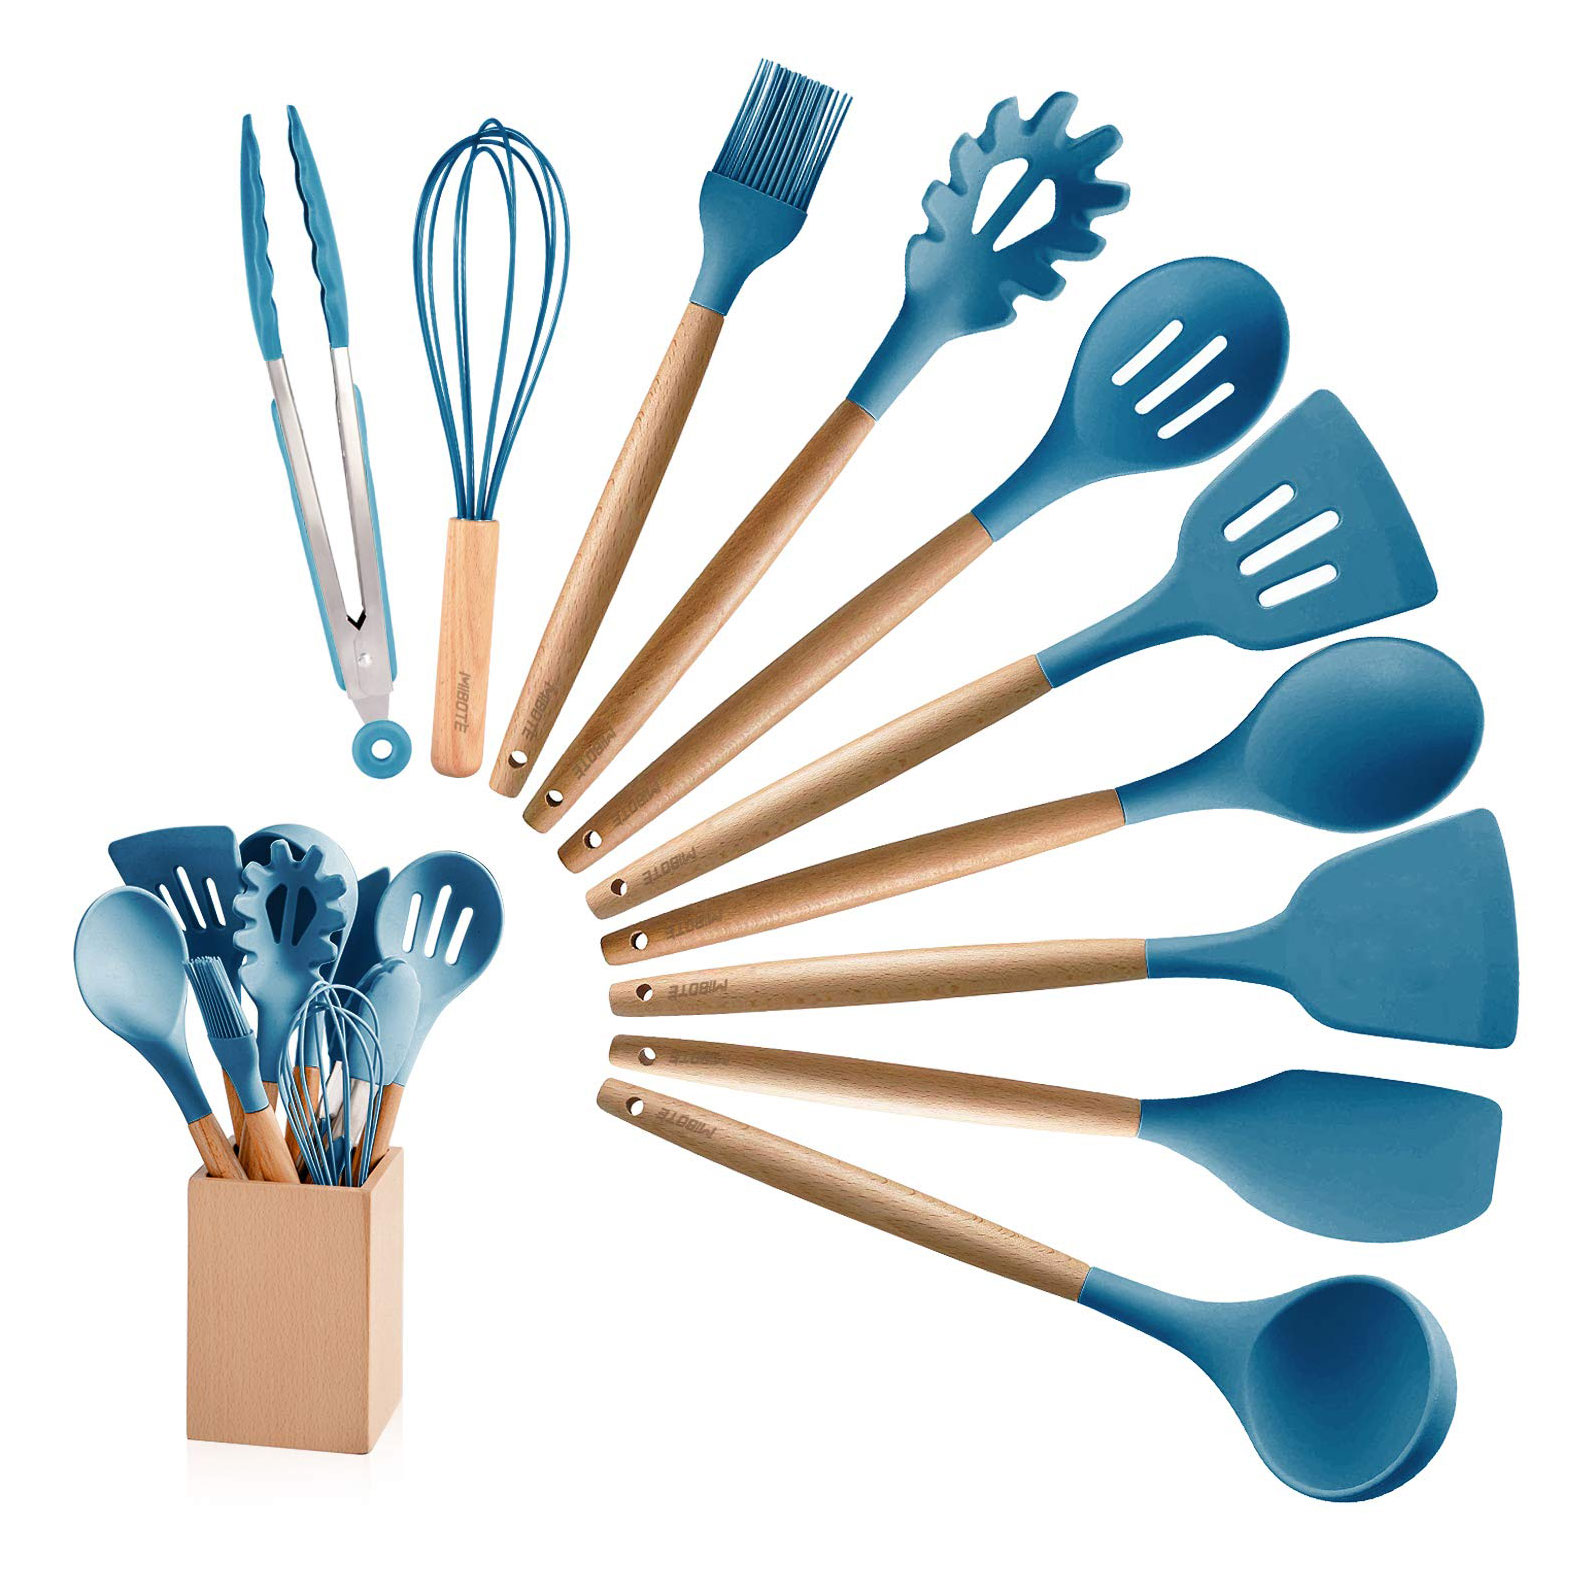 The kitchen utensils: